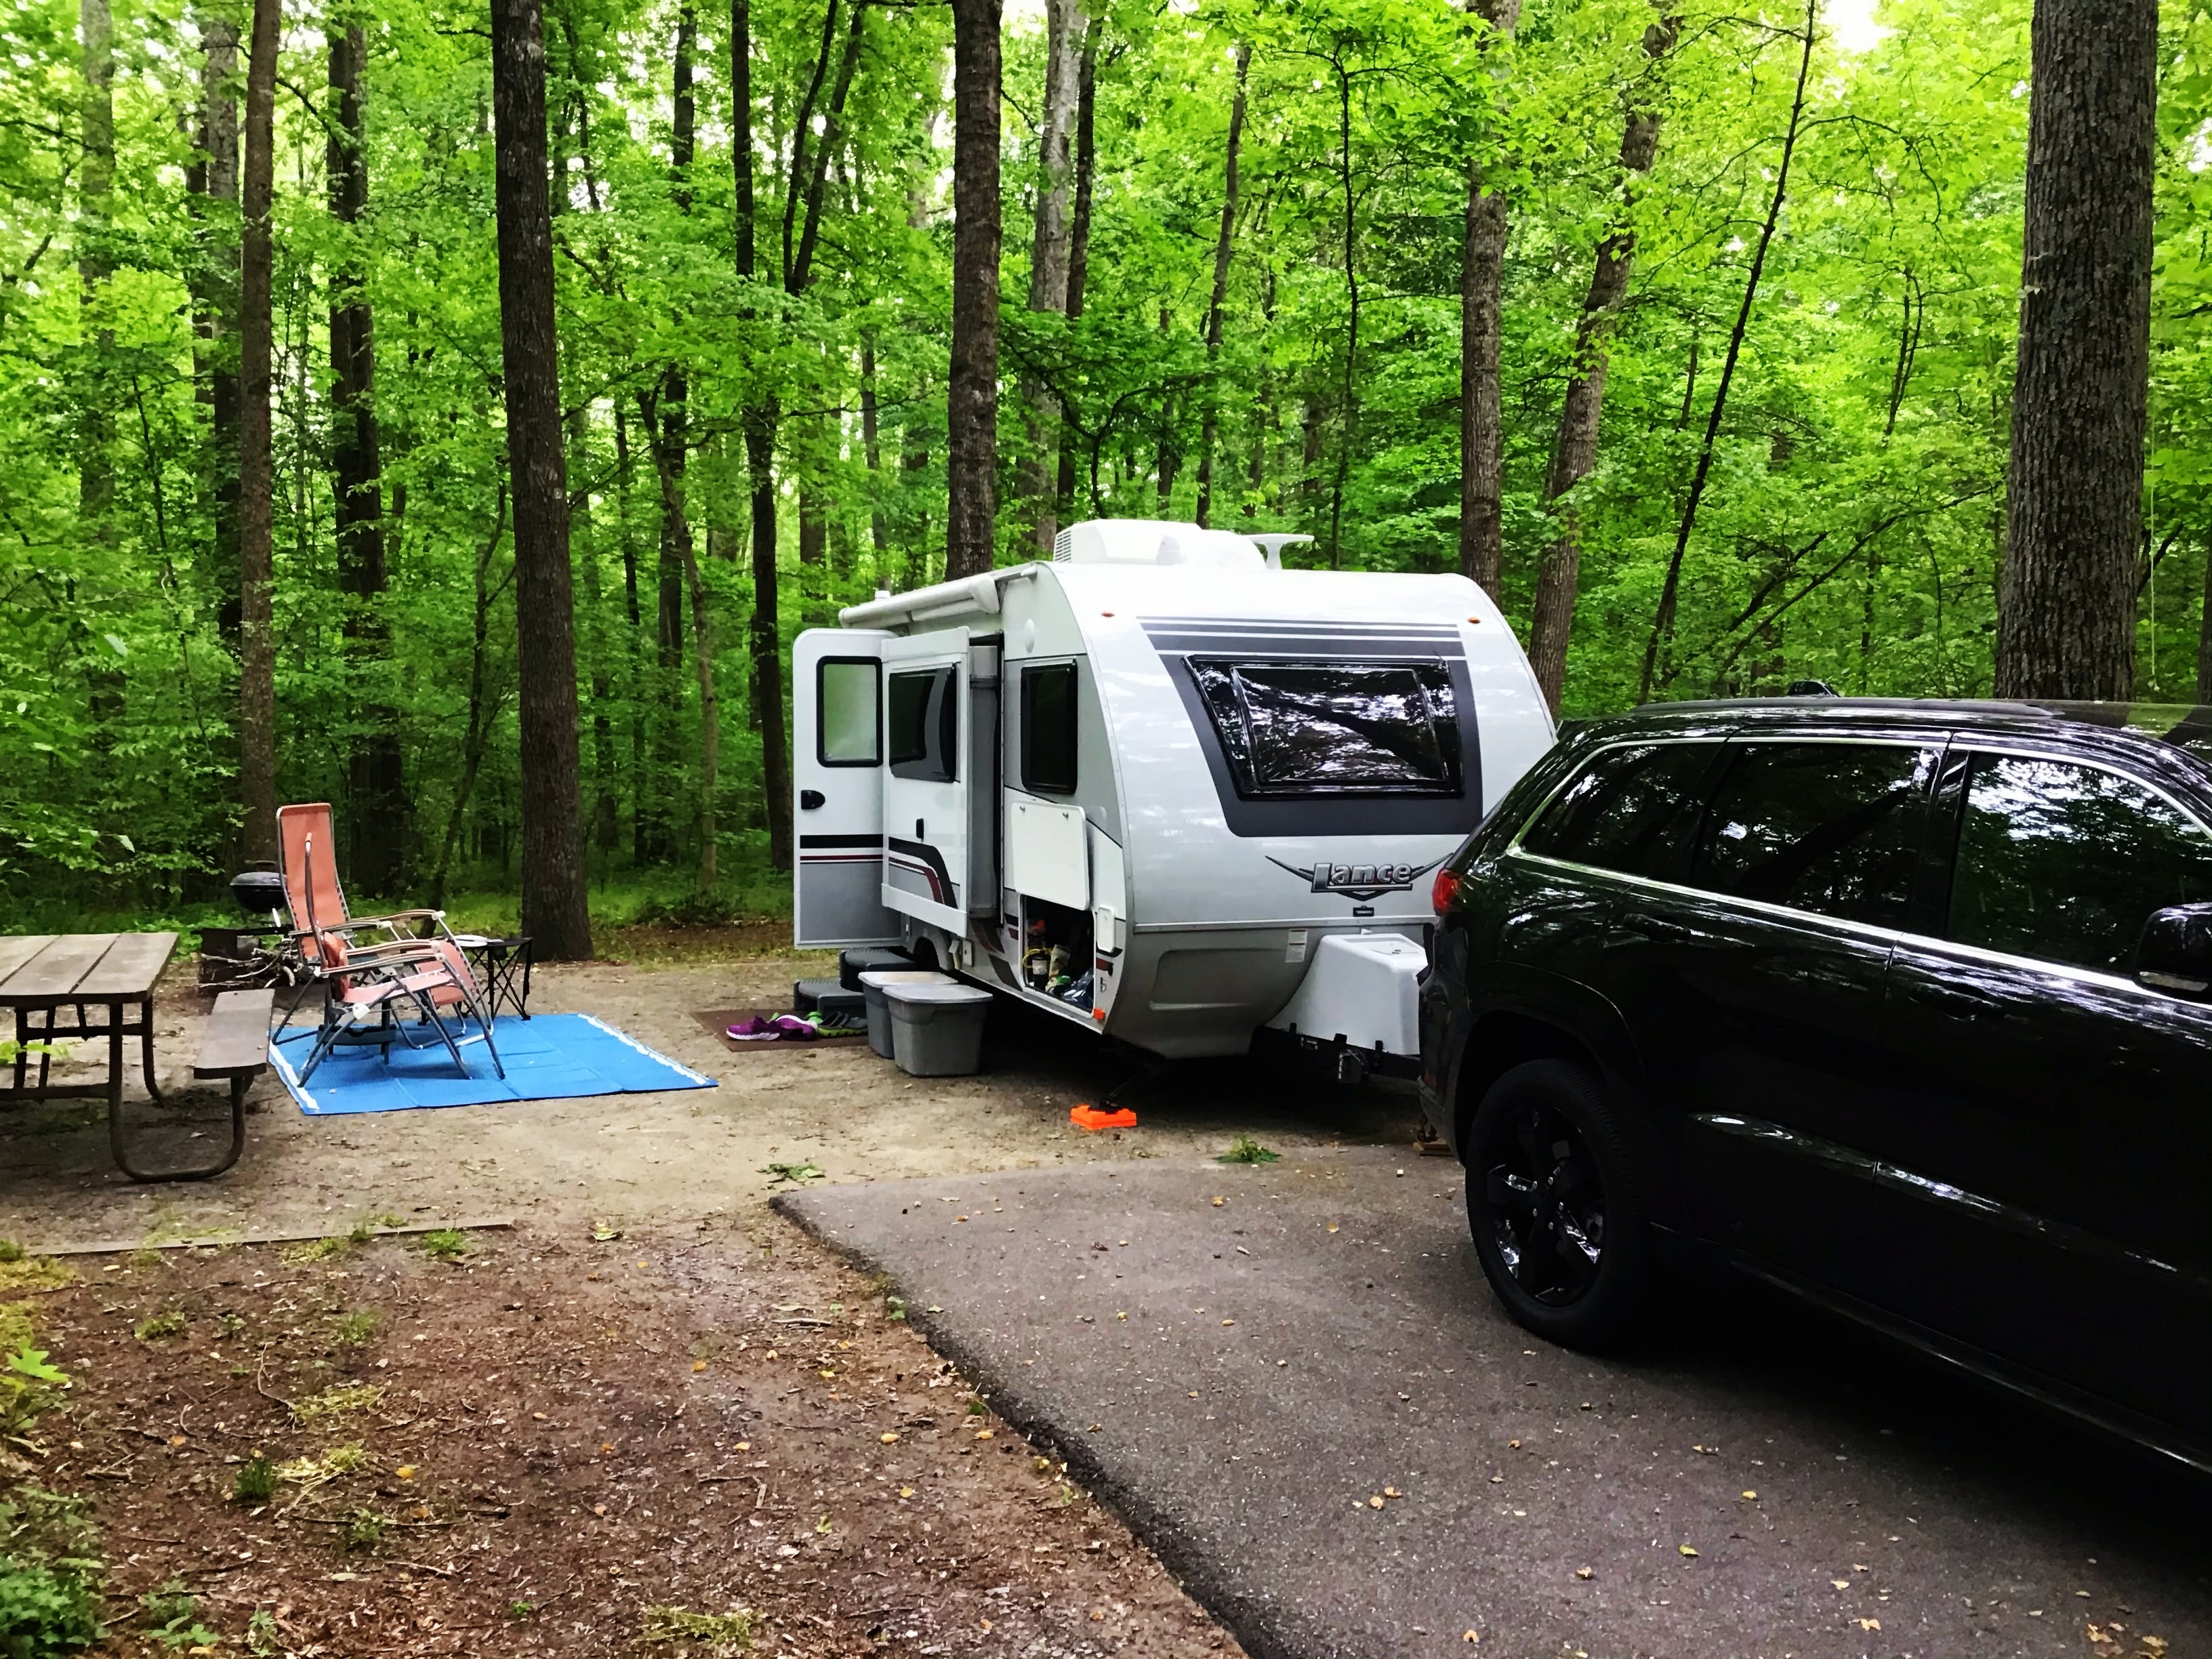 RV Camping in Dundalk Maryland: 39 Campgrounds in the